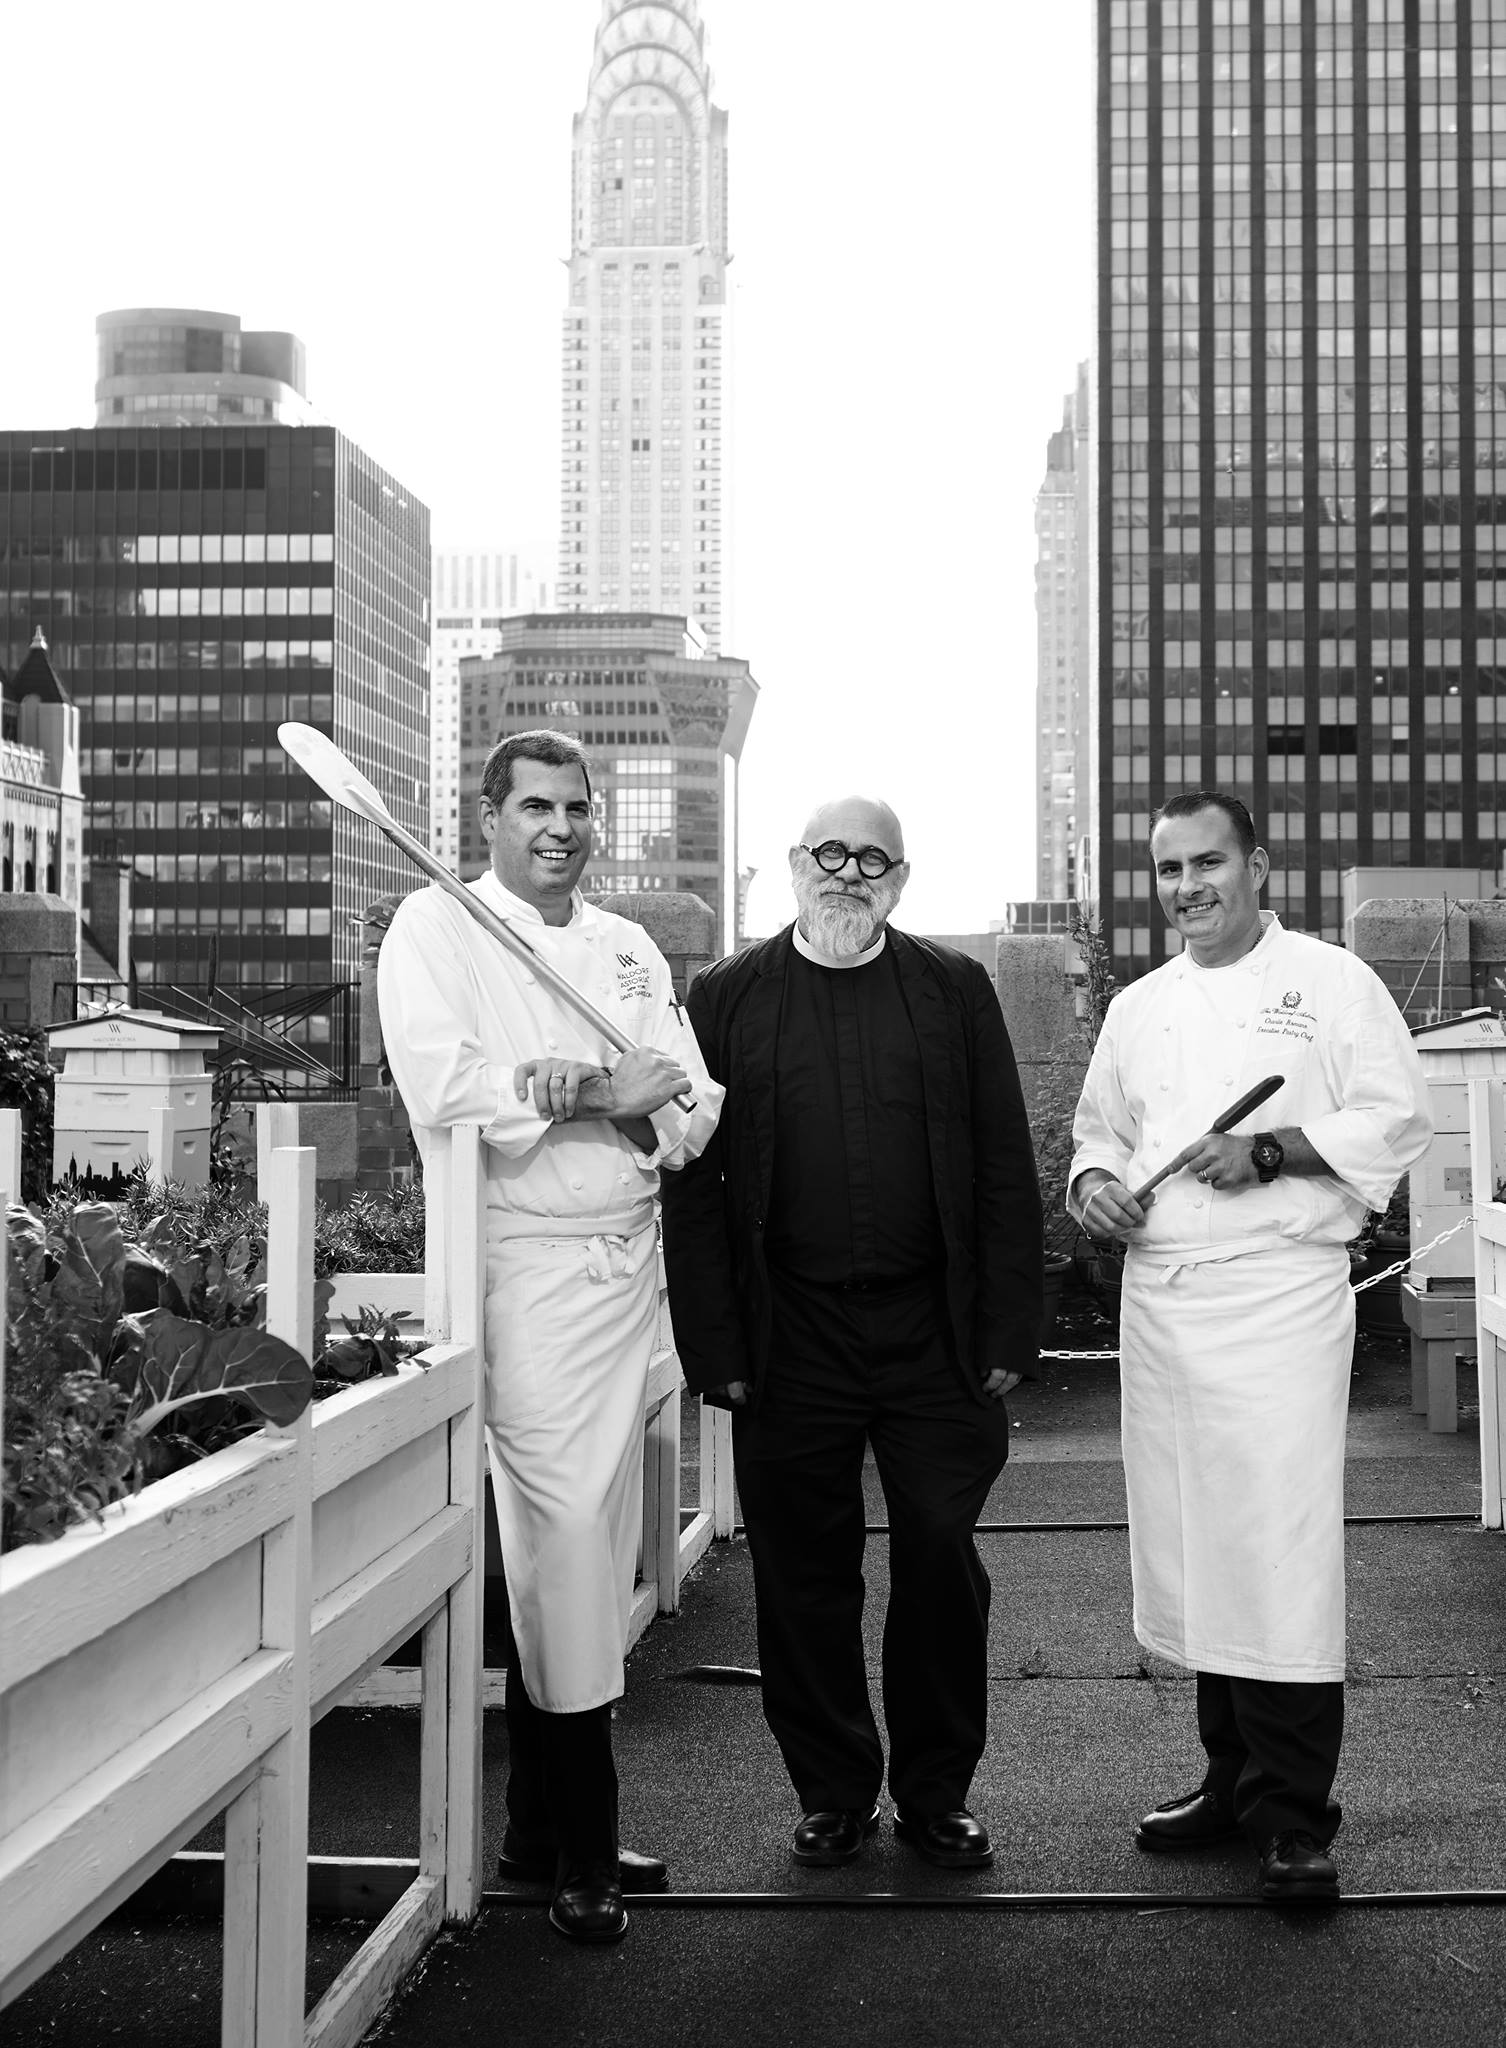 Chef David Garcelon, Director of Culinary, Edward Sunderland, Director of Crossroads, and Charles Ramono, Executive Pastry Chef, on the rooftop garden of the Waldorf Astoria New York selecting ingredients for the Fare Share Friday poster photo shoot. November 2014